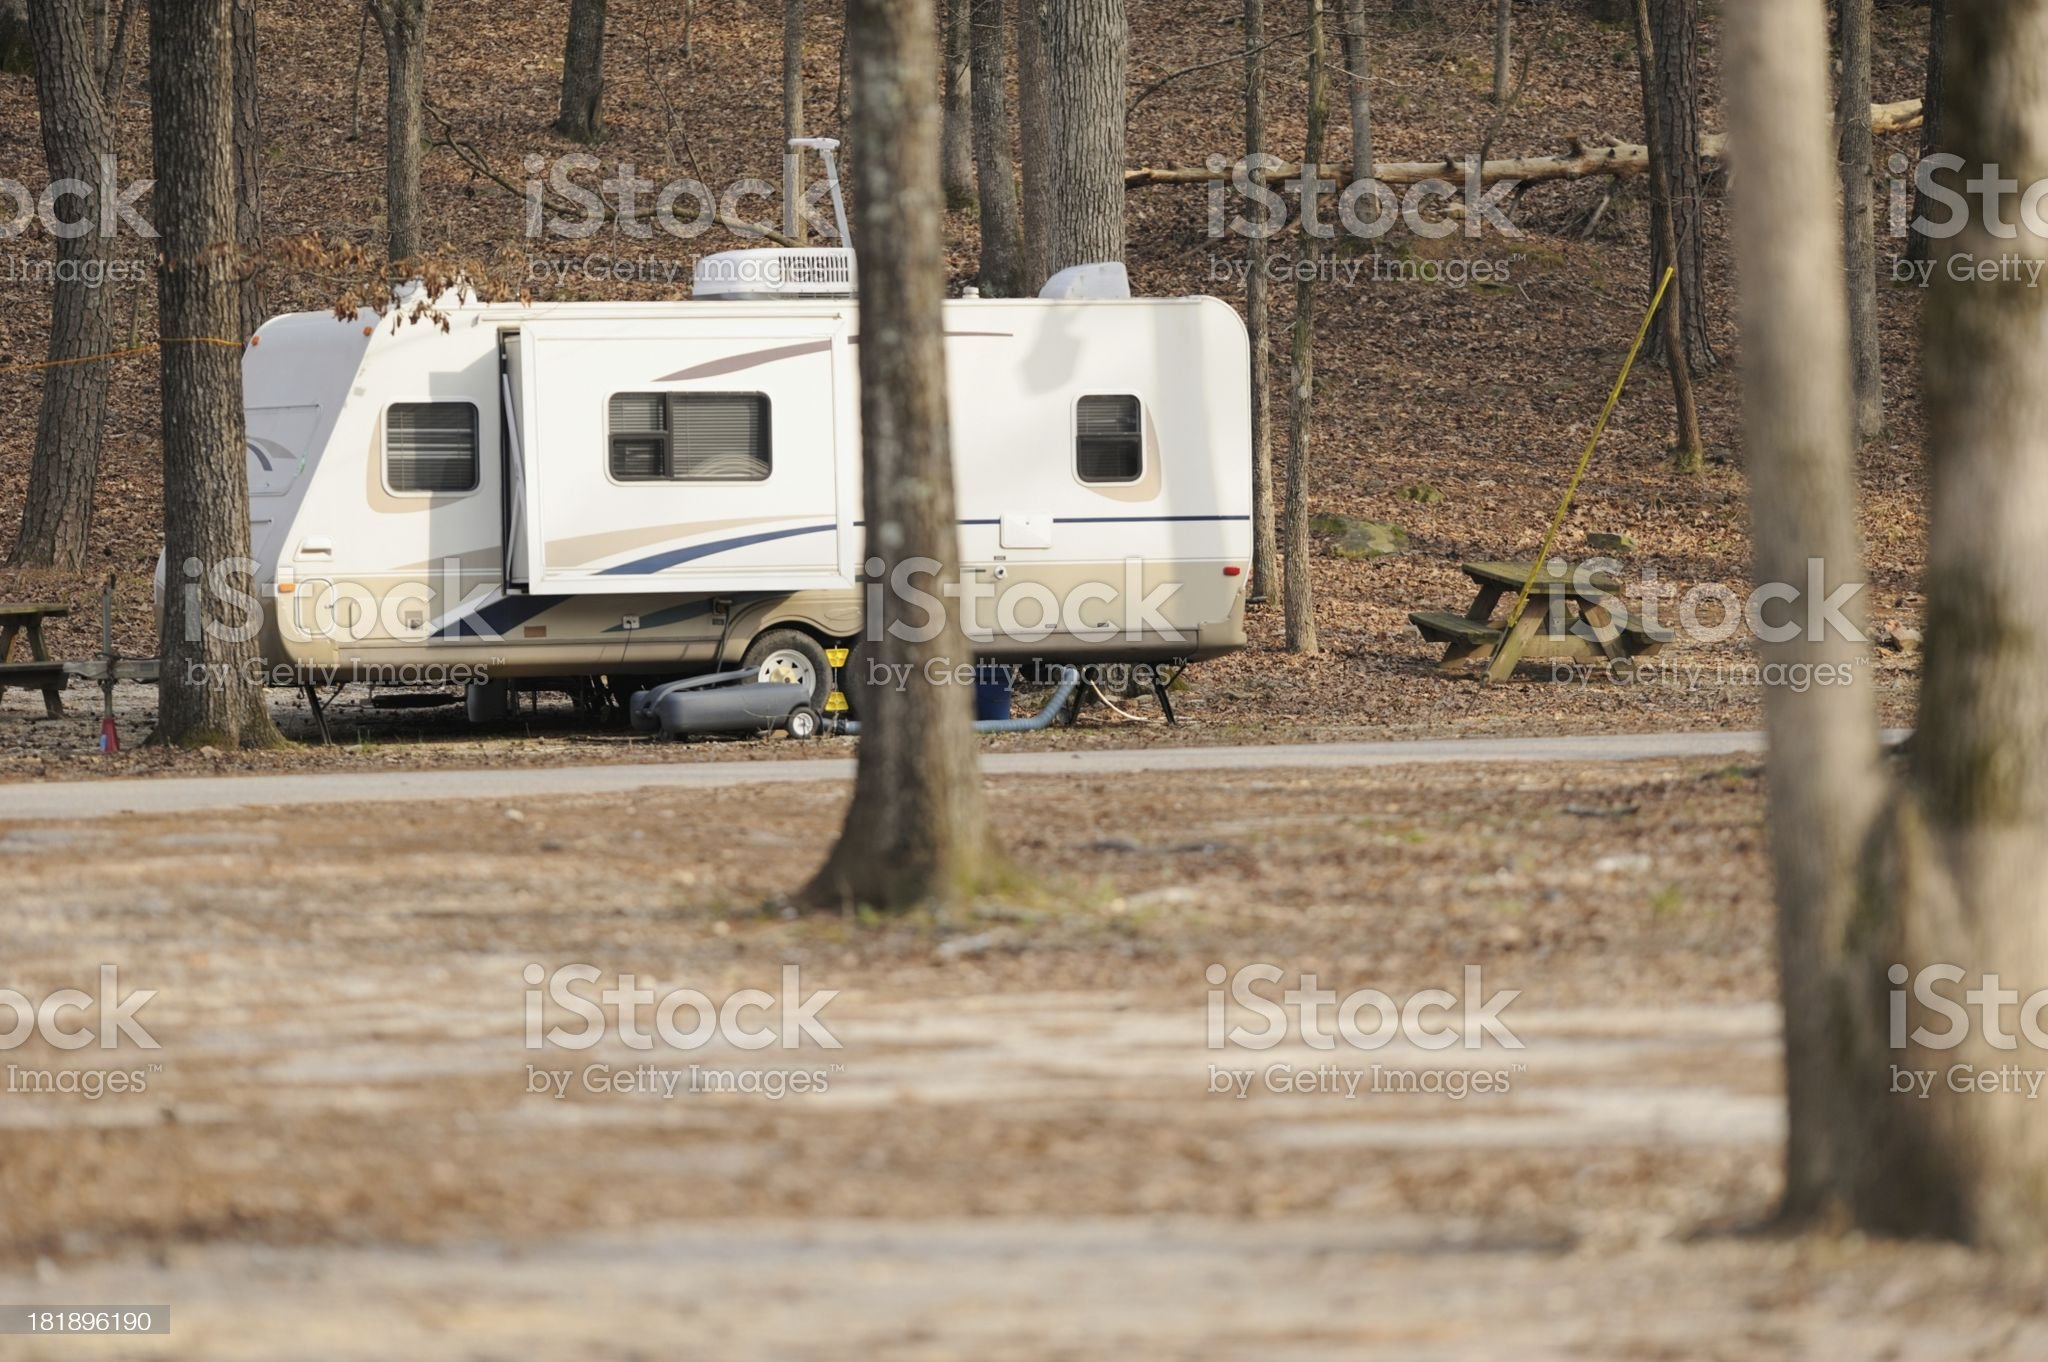 Travel trailer camper in campground royalty-free stock photo